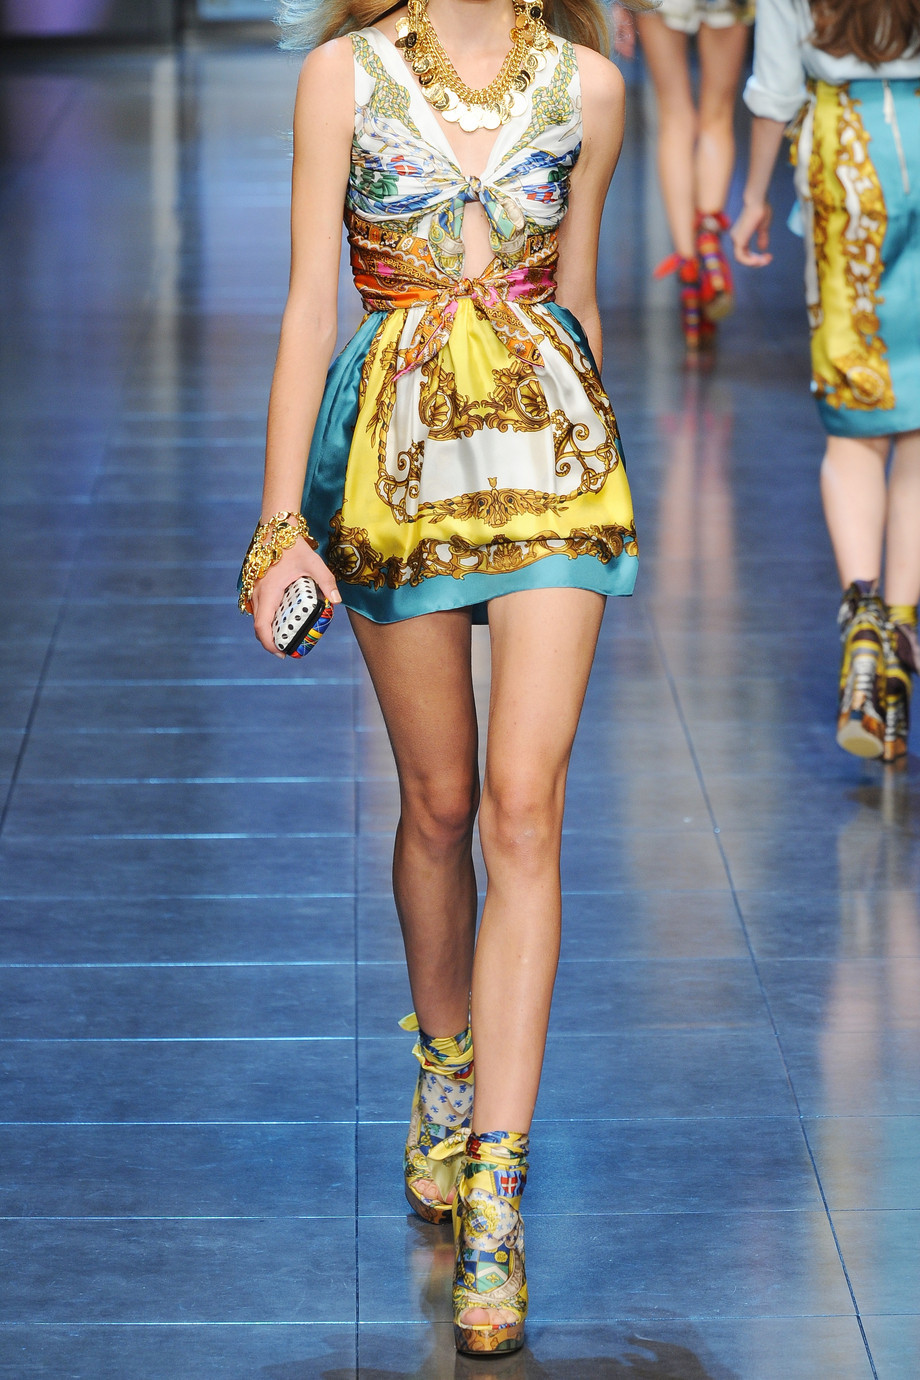 Dolce-gabbana-printed-summer-dress-wedding-guest-dressing-what-not-to-wear-bare-to-clothed-ratio.full